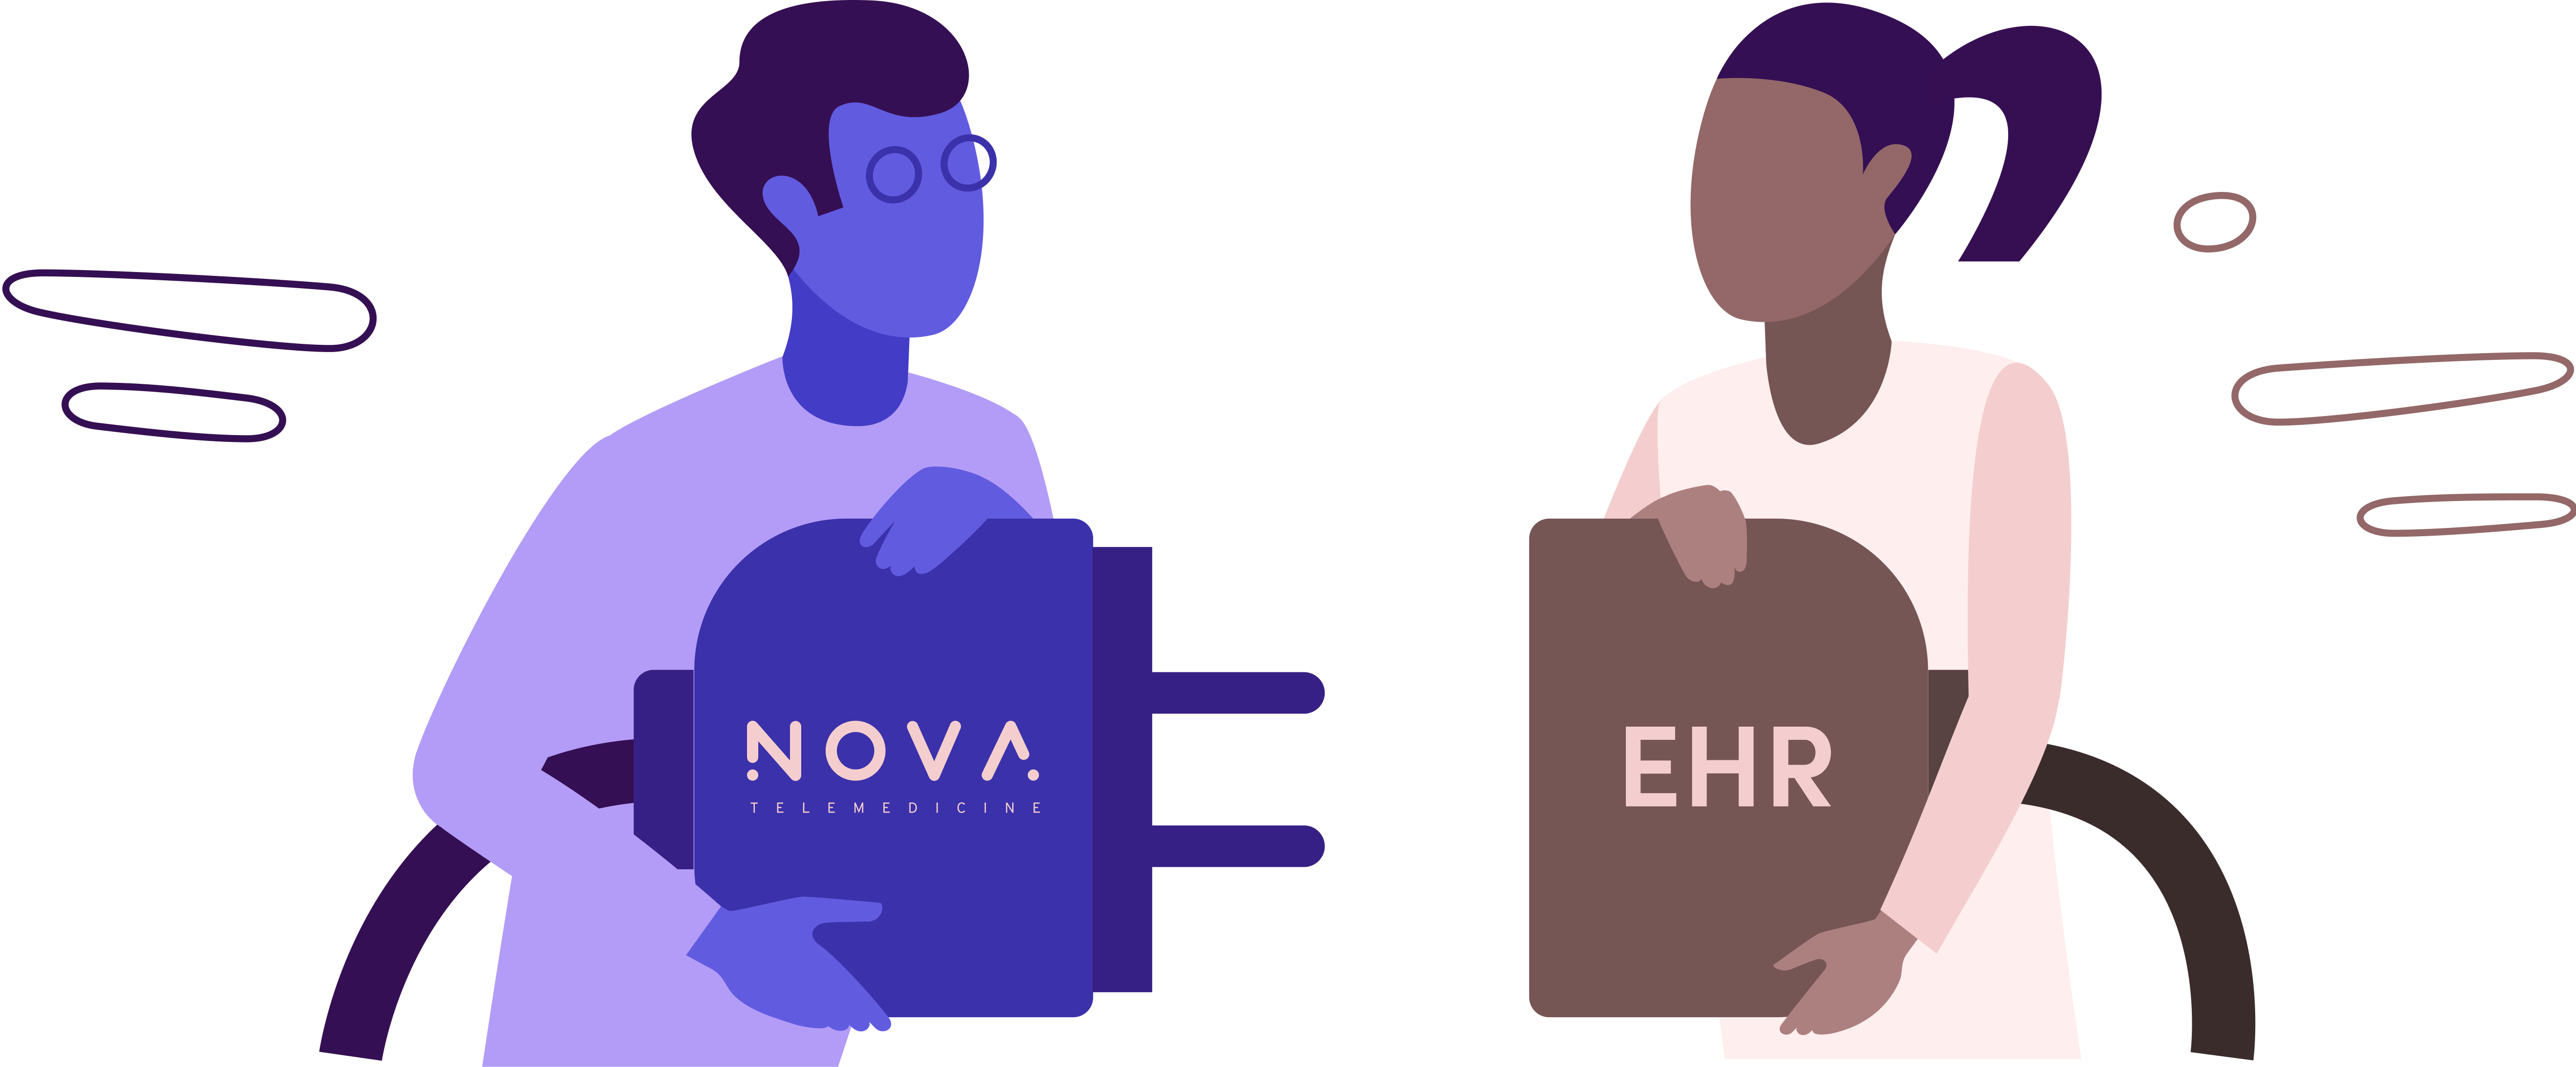 Illustration of a man with a Nova plug and a woman with an EHR plug